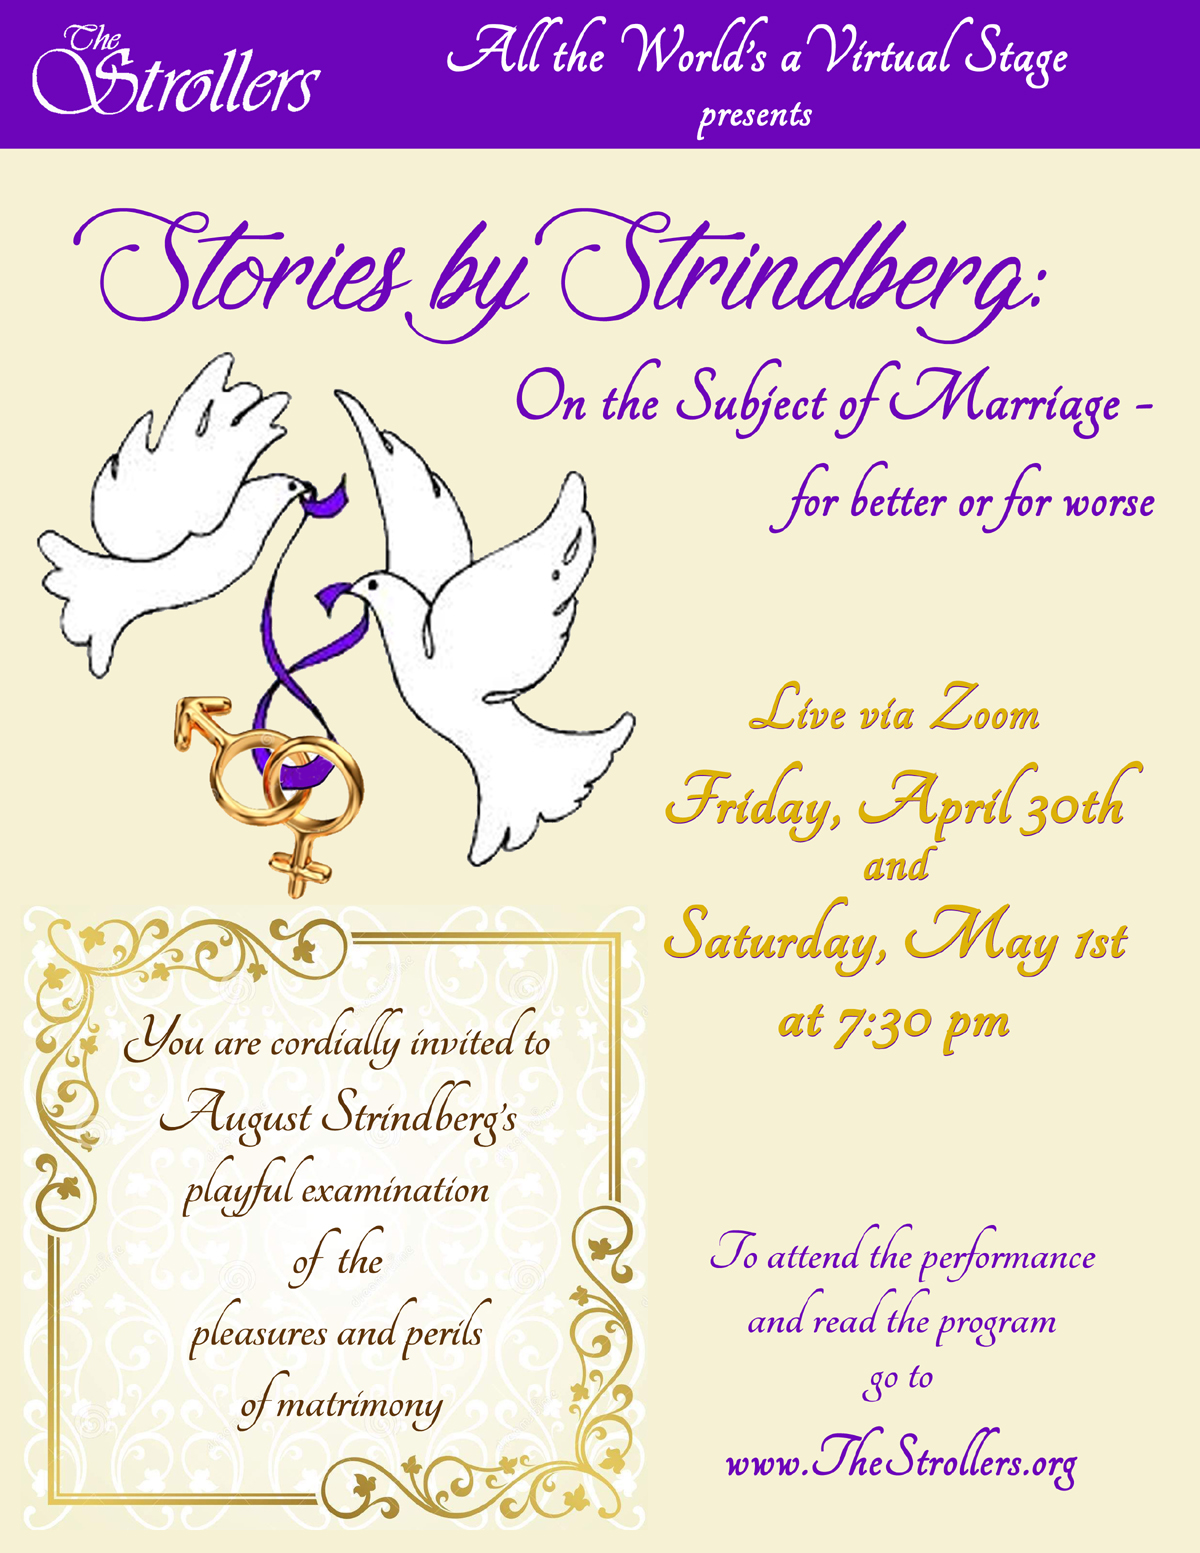 The Strollers: All the World's a Virtual Stage presents: Stories by Strindberg: On the Subject of Marriage - for better or for worse. You are cordially invited to August Strindberg's playful examination of the pleasures and perils of matrimony. Live via Zoom, Friday, April 30th and Saturday, May 1st at 7:30 pm. To attend the performance and read the program, go to www.TheStrollers.org